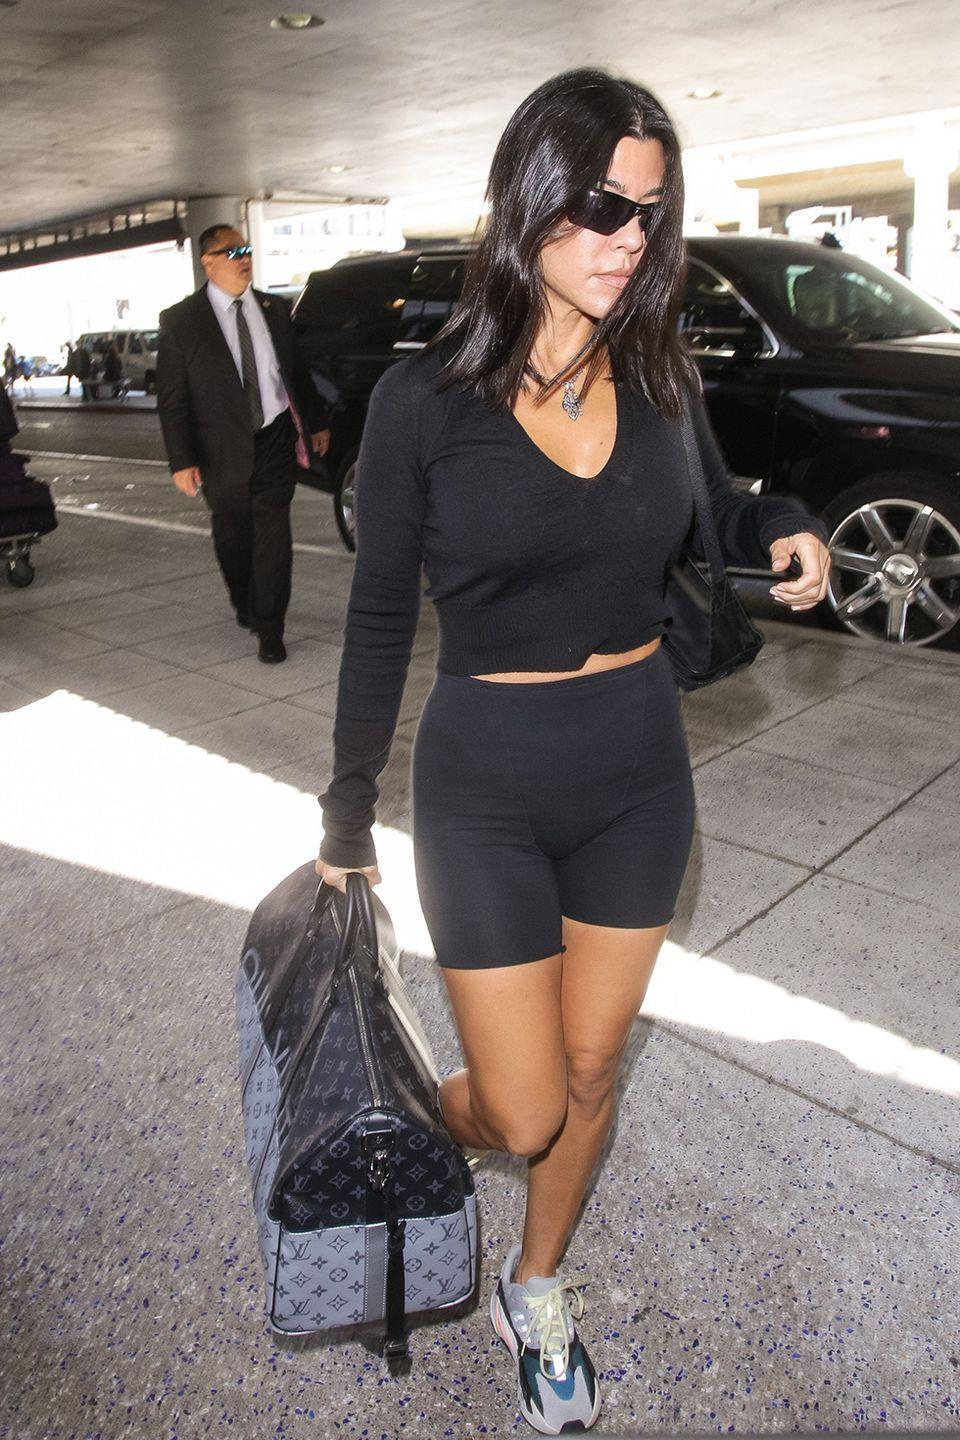 "<p>""I try to eat healthy and include as many organic whole foods as possible,"" Kourtney said on her <a href=""https://www.kourtneykardashian.com/kourt/1164-kourtney-kardashian-meal-plan"" rel=""nofollow noopener"" target=""_blank"" data-ylk=""slk:website"" class=""link rapid-noclick-resp"">website</a>.</p><p>While any veggie is better than no veggie, organic <em>might</em> have a slight edge: Research published in the <em>British Journal of Nutrition</em> found that organic crops and products made from them pack 17 percent more antioxidants on average than conventional products.</p>"